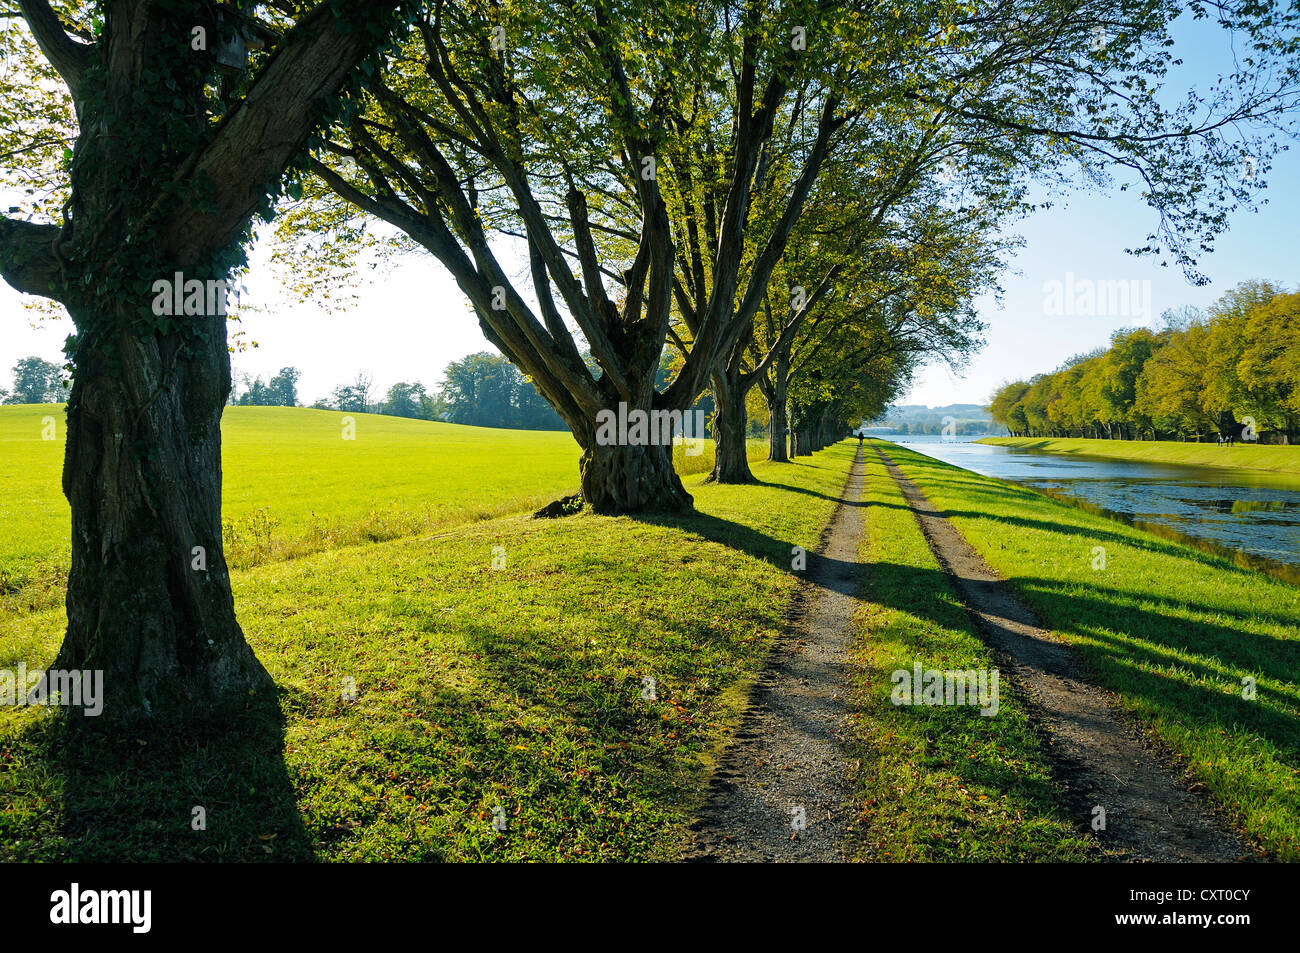 Path and row of trees at the water on Herreninsel island, Lake Chiemsee, Chiemgau region, Bavaria, Germany, Europe - Stock Image